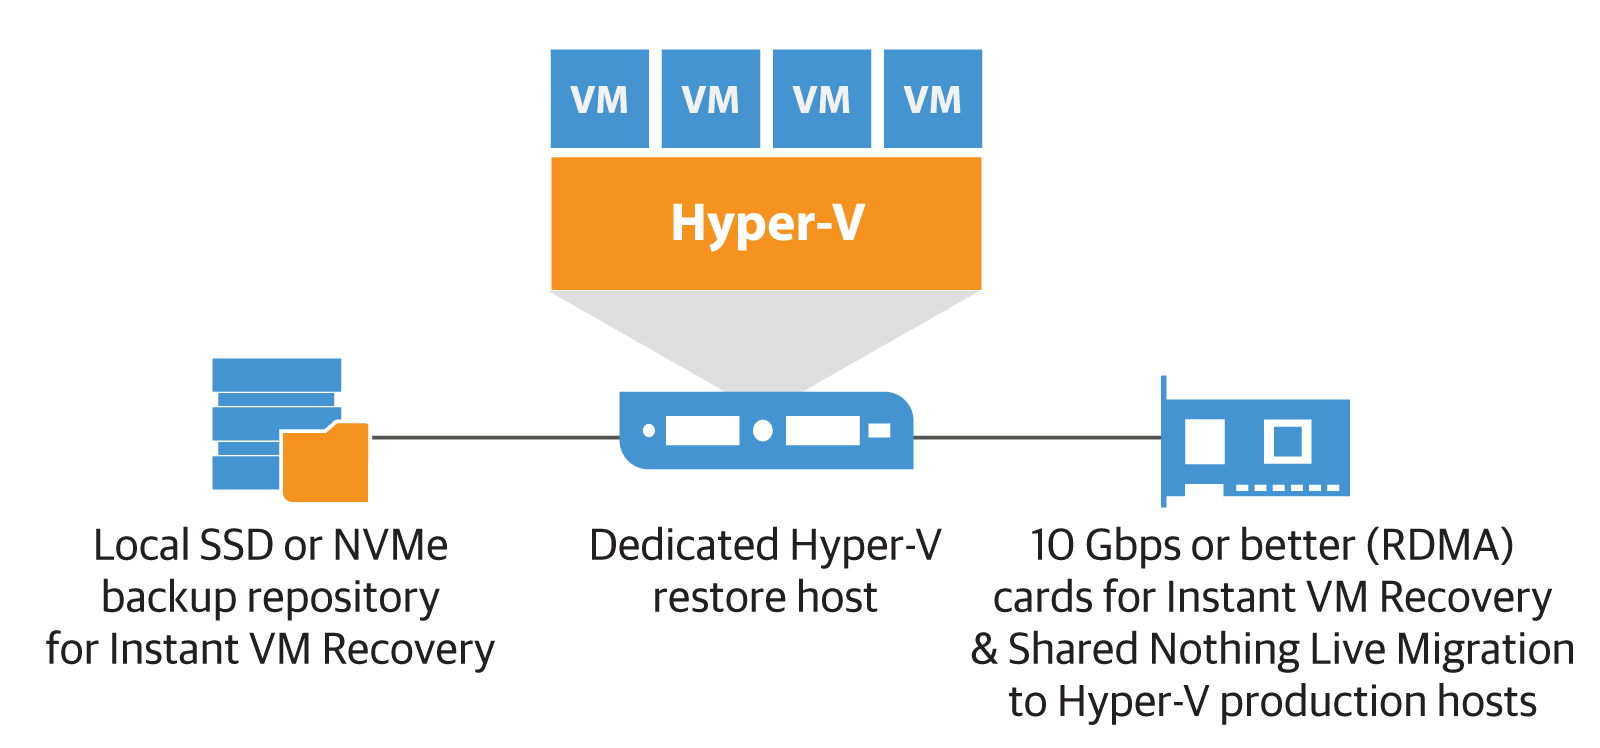 Baking Clouds - Instant VM Recovery considerations for modern data center – Part 2